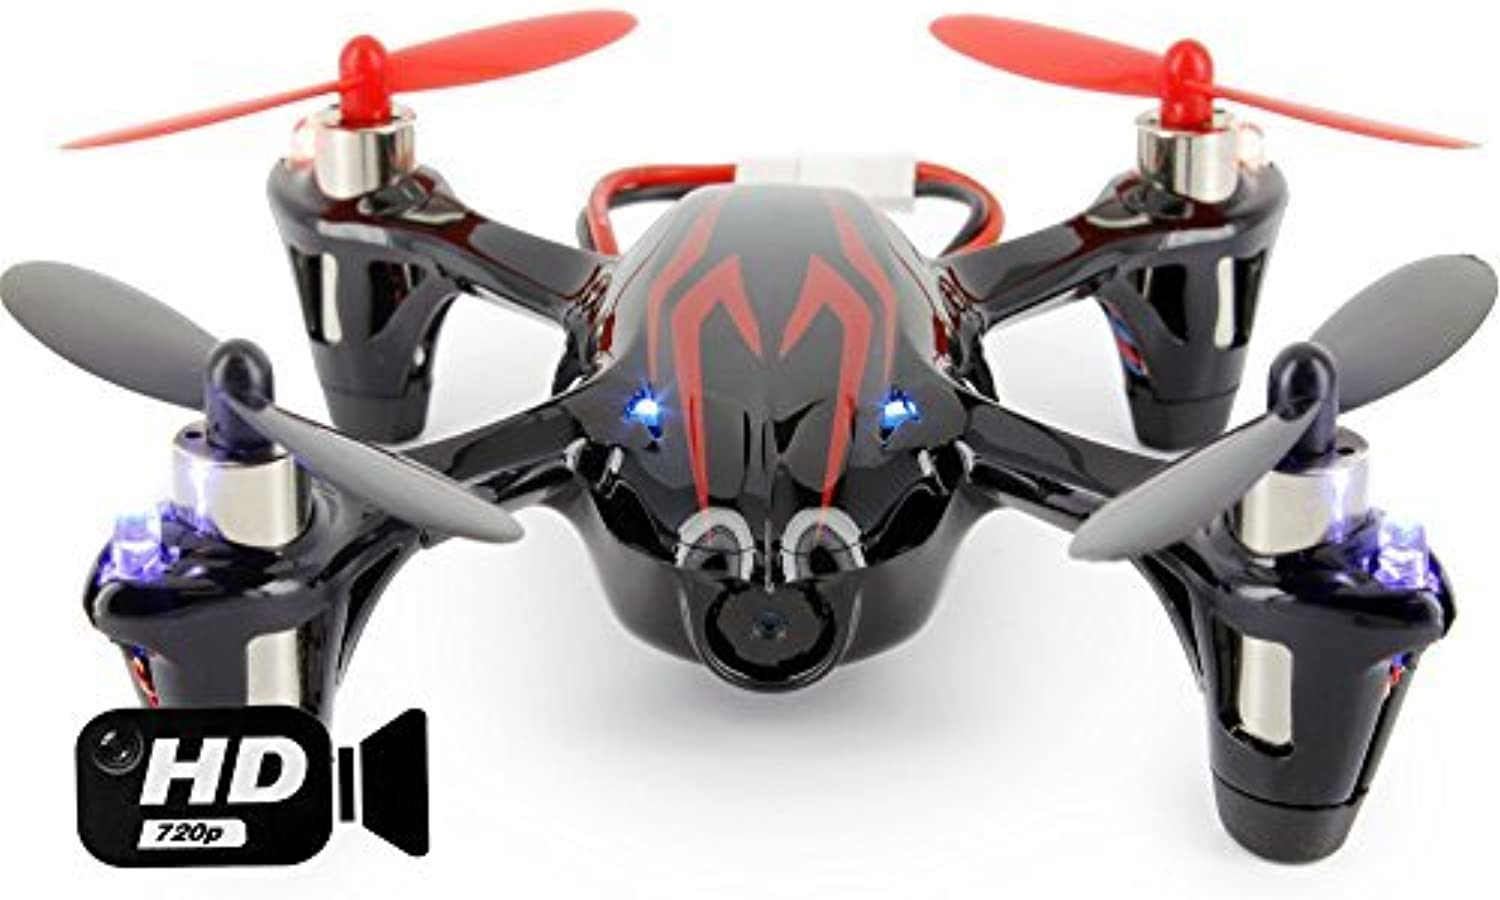 UPGRADED Hubsan X4 H107C with HD 2MP Camera 2.4Ghz 4CH 6 Axis Gyro RC Quadcopter Mode 2 RTF - rot schwarz by Hubsan